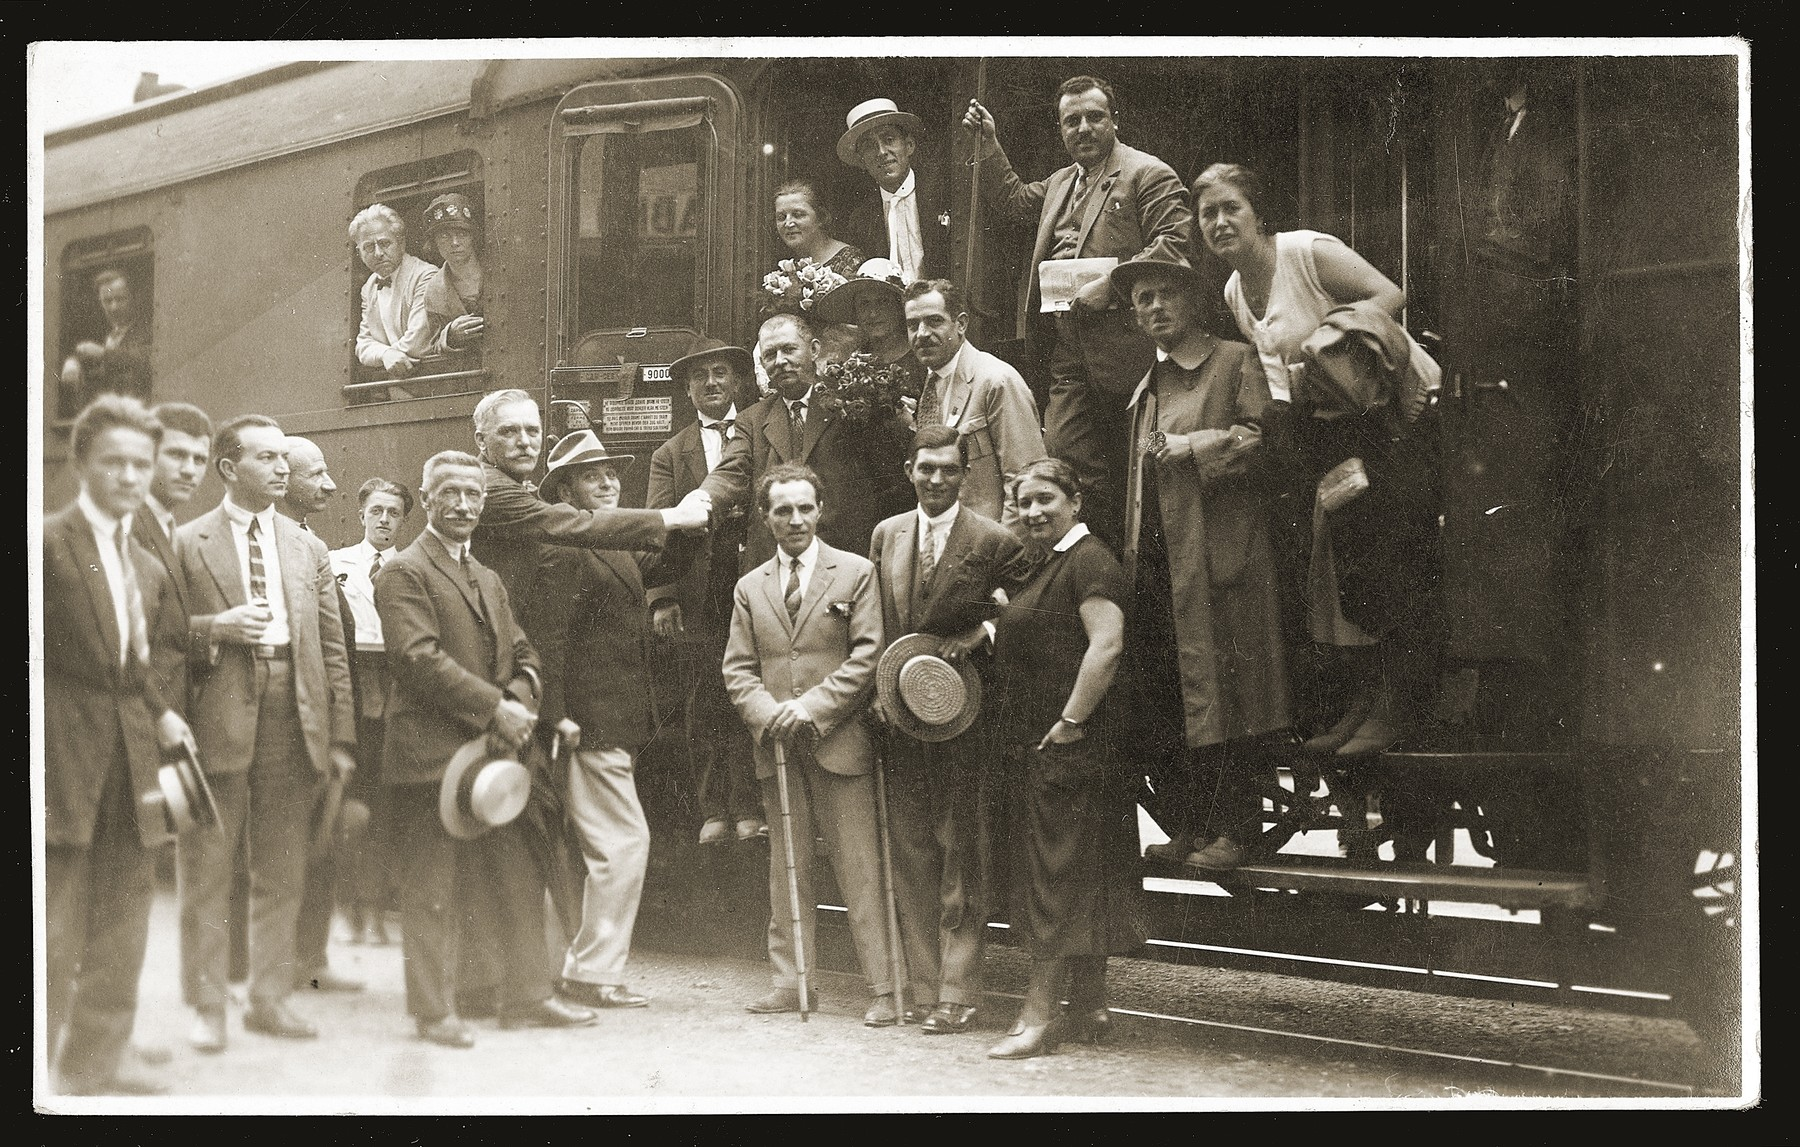 Members of the Serbian photographers' union pose at the Belgrade train station before their departure for a photographers' convention in Vienna.    Pictured (in the middle row, fourth from the left) is Gavra Konfino, the donor's maternal grandfather and the chairman of the photographers' union.